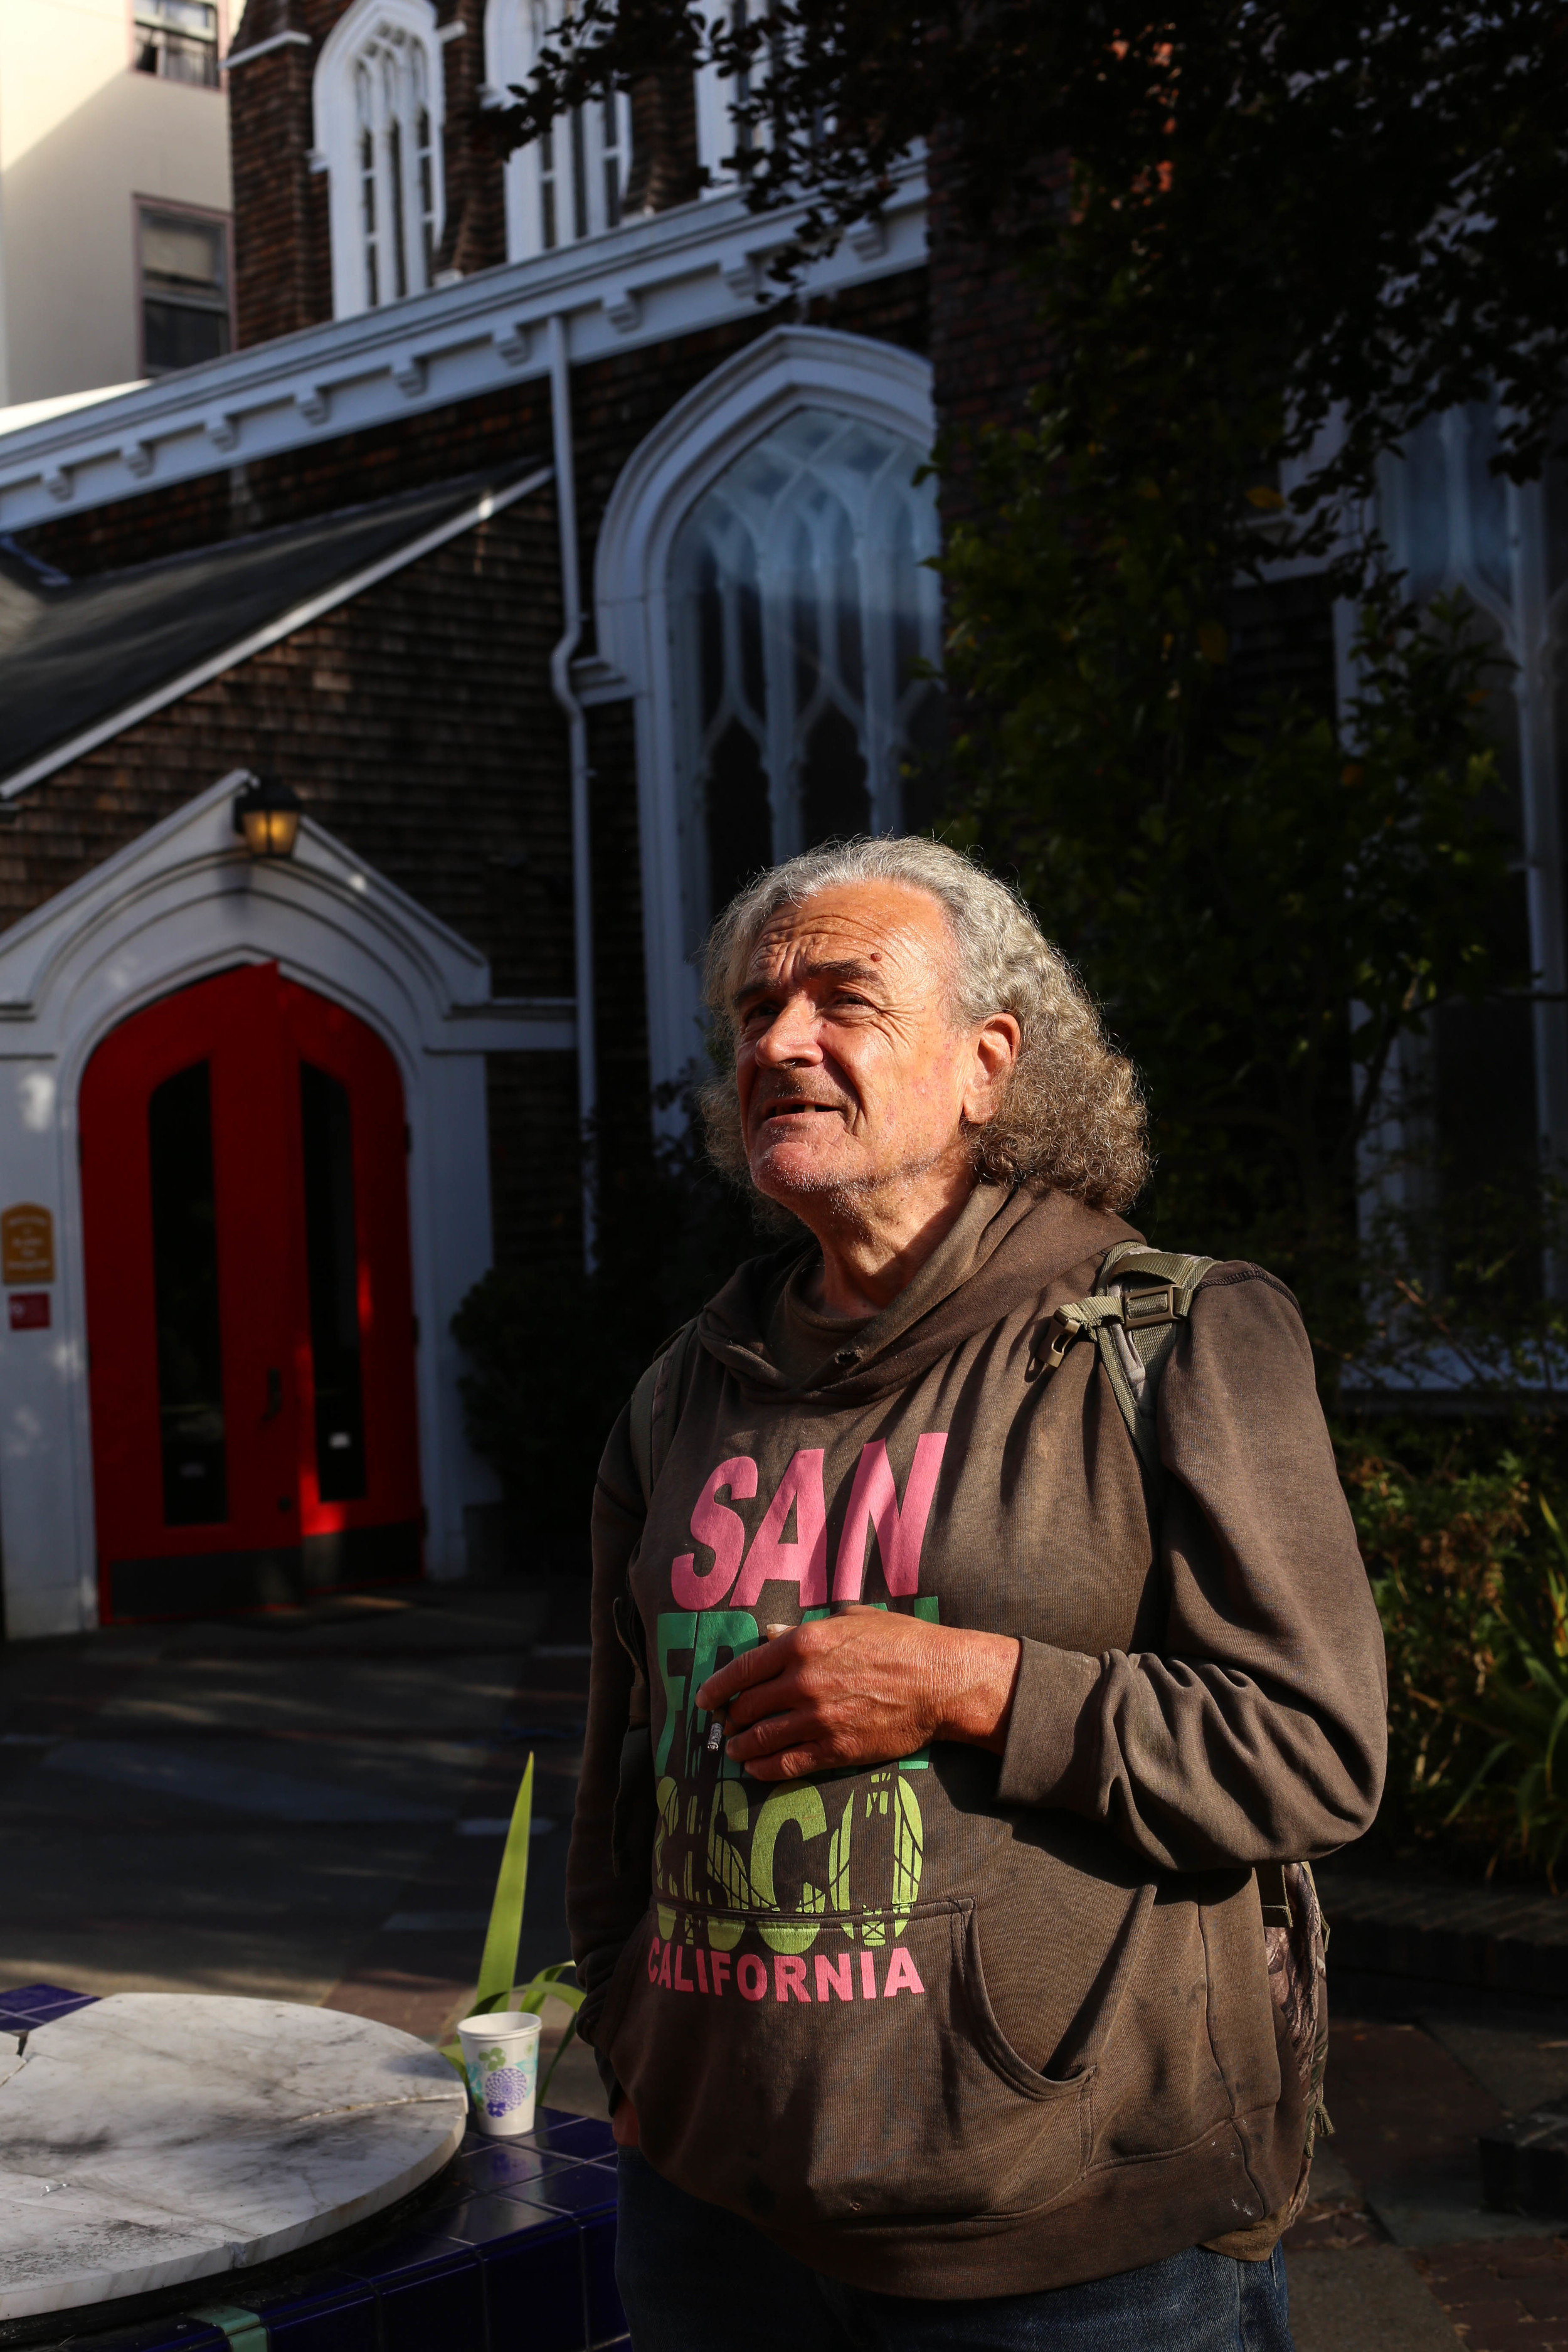 Richard Bandoli, originally from Illinois, arrived in SF in 1978 and has been attending the Gubbio Project for a couple of months.